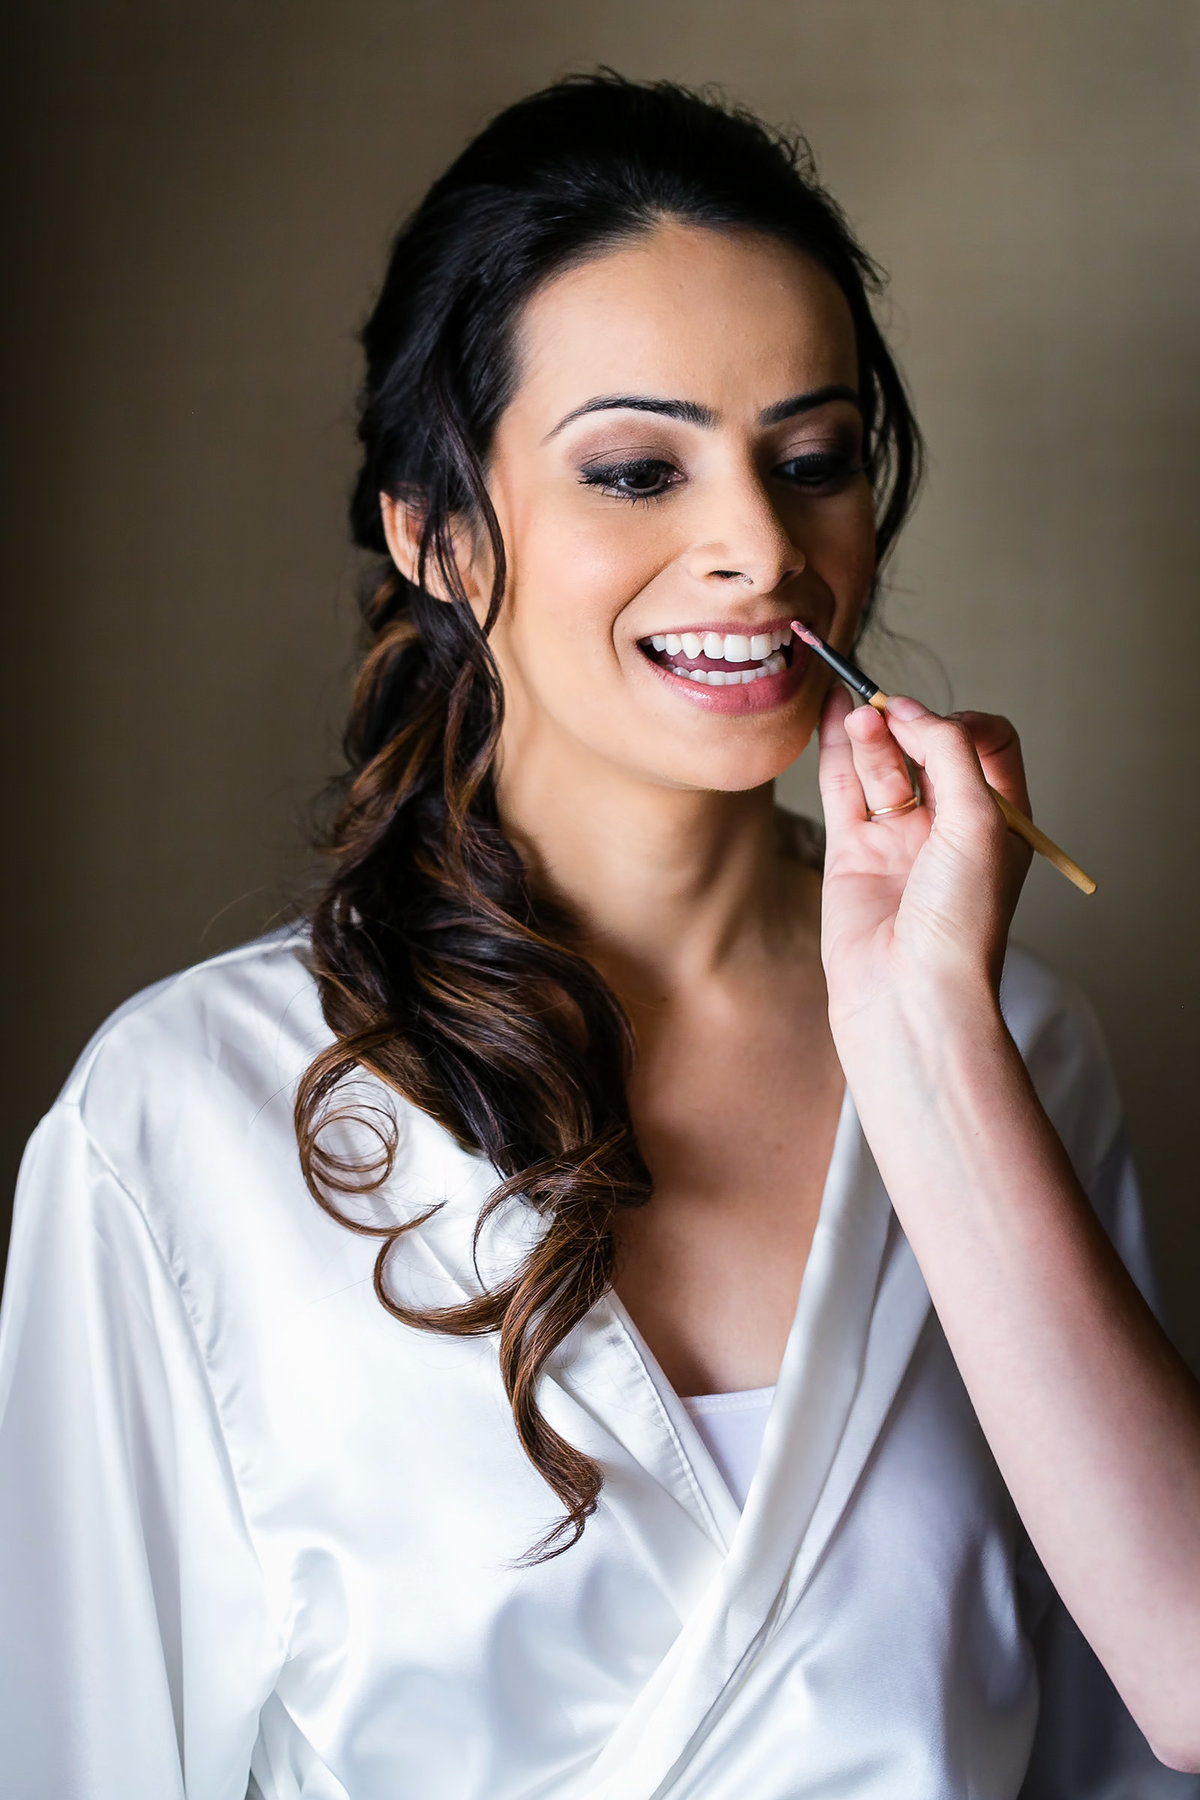 005-hotel-irvine-wedding-photos-sugandha-farzan